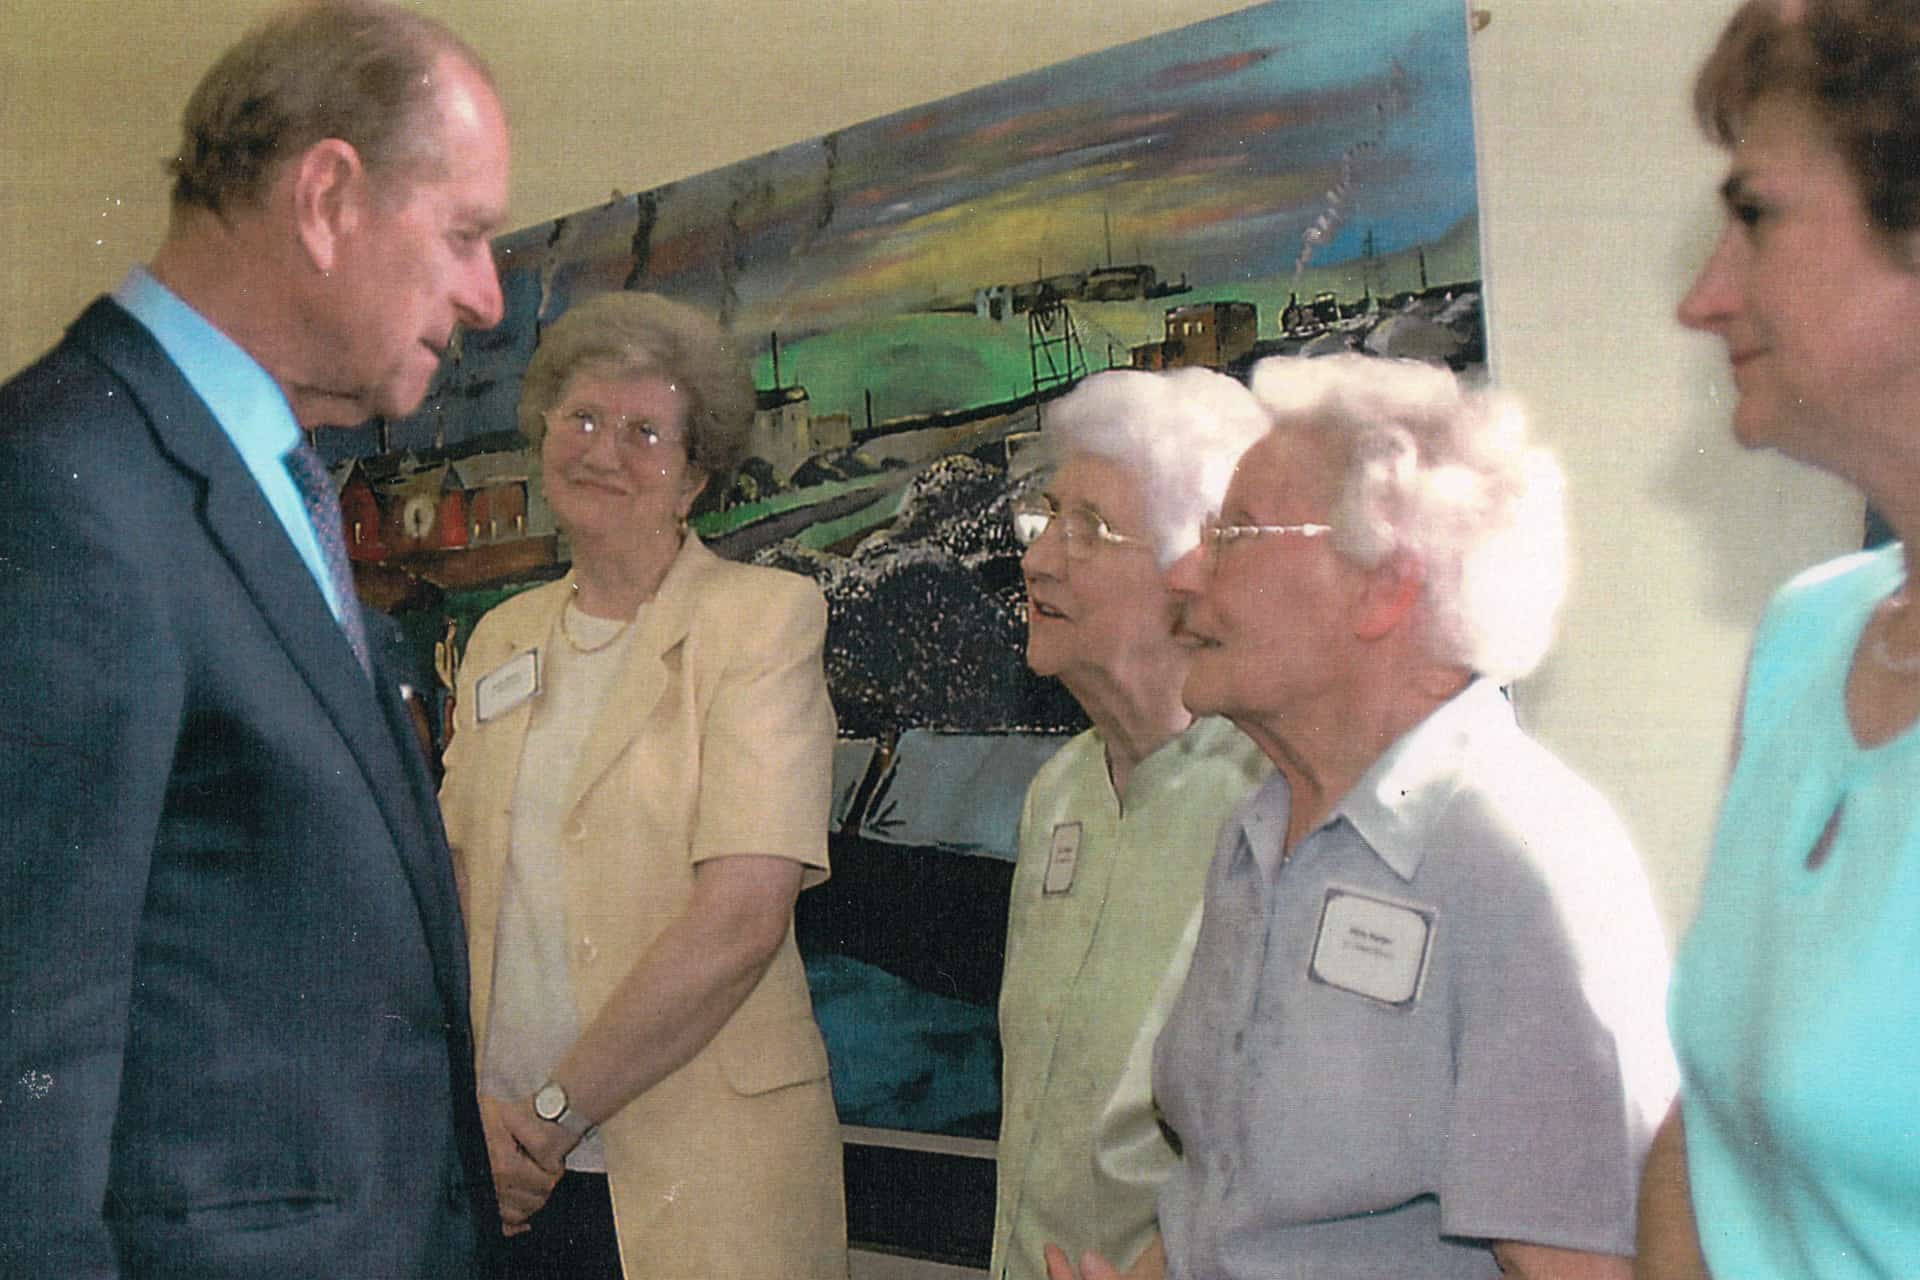 The only recent picture I have of my mom is this one when Prince Philip came to visit in about 2003. She died nearly 10 years ago now. She would be 100 this May so she was born in 1918 at the end of the first war.  That's my mom in the green top.